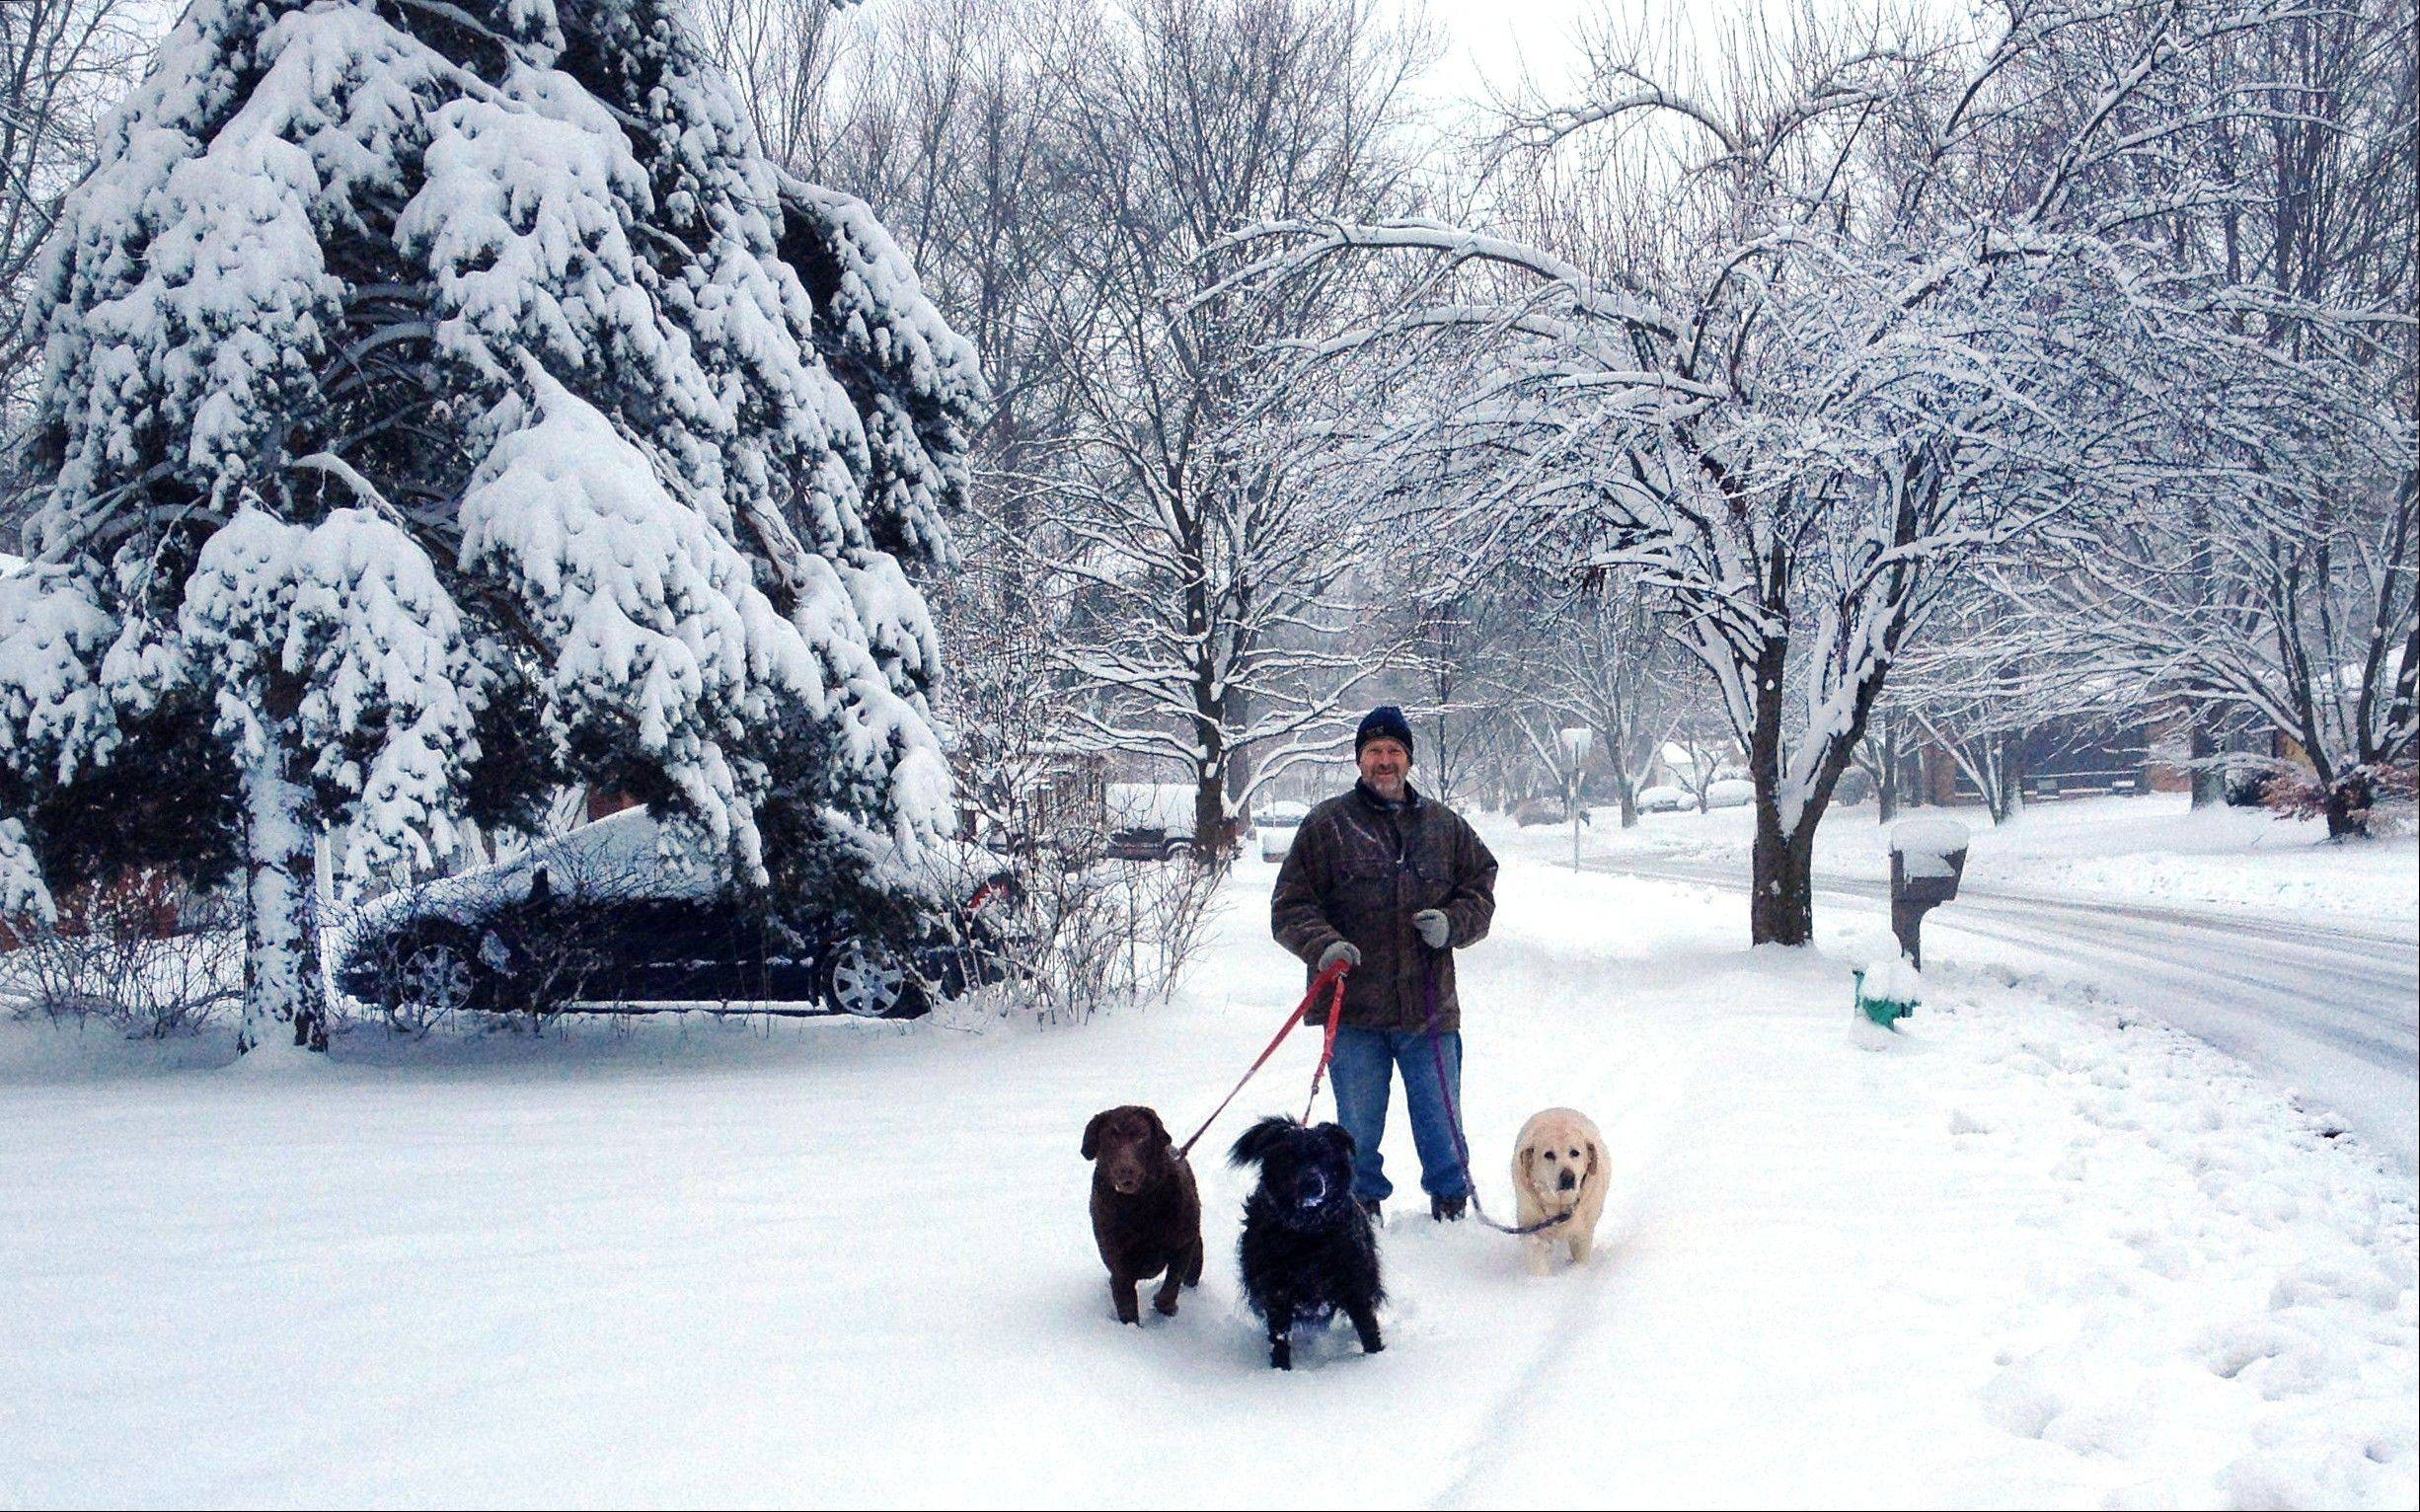 Dennis Catron walks his three dogs along Darby Lane through the Greenbriar neighborhood on Indianapolis' far Northside on Monday, March 25, 2013 after more than seven inches of snow fell overnight.